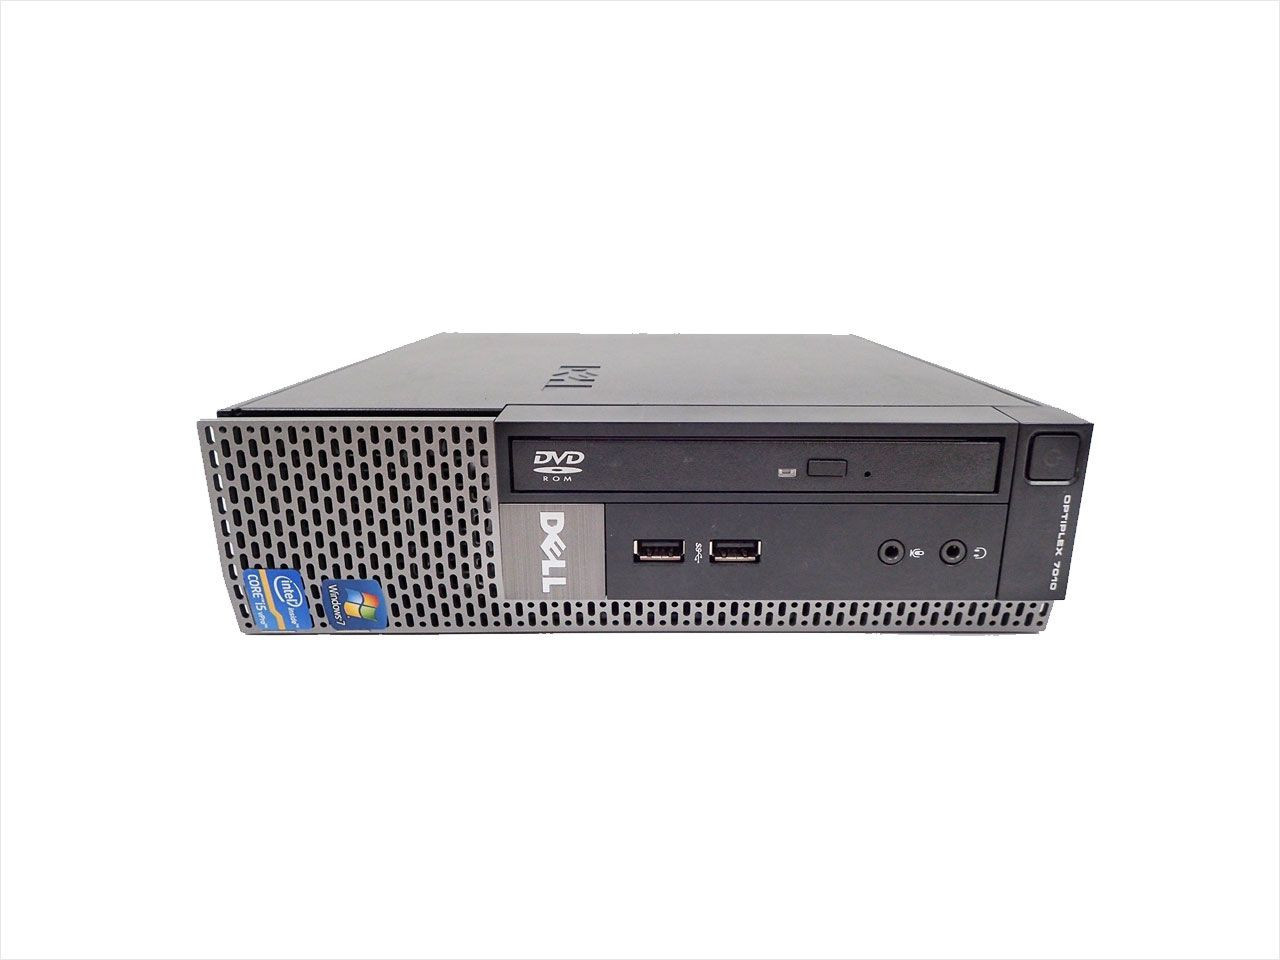 Dell Optiplex 7010 USFF - Front View